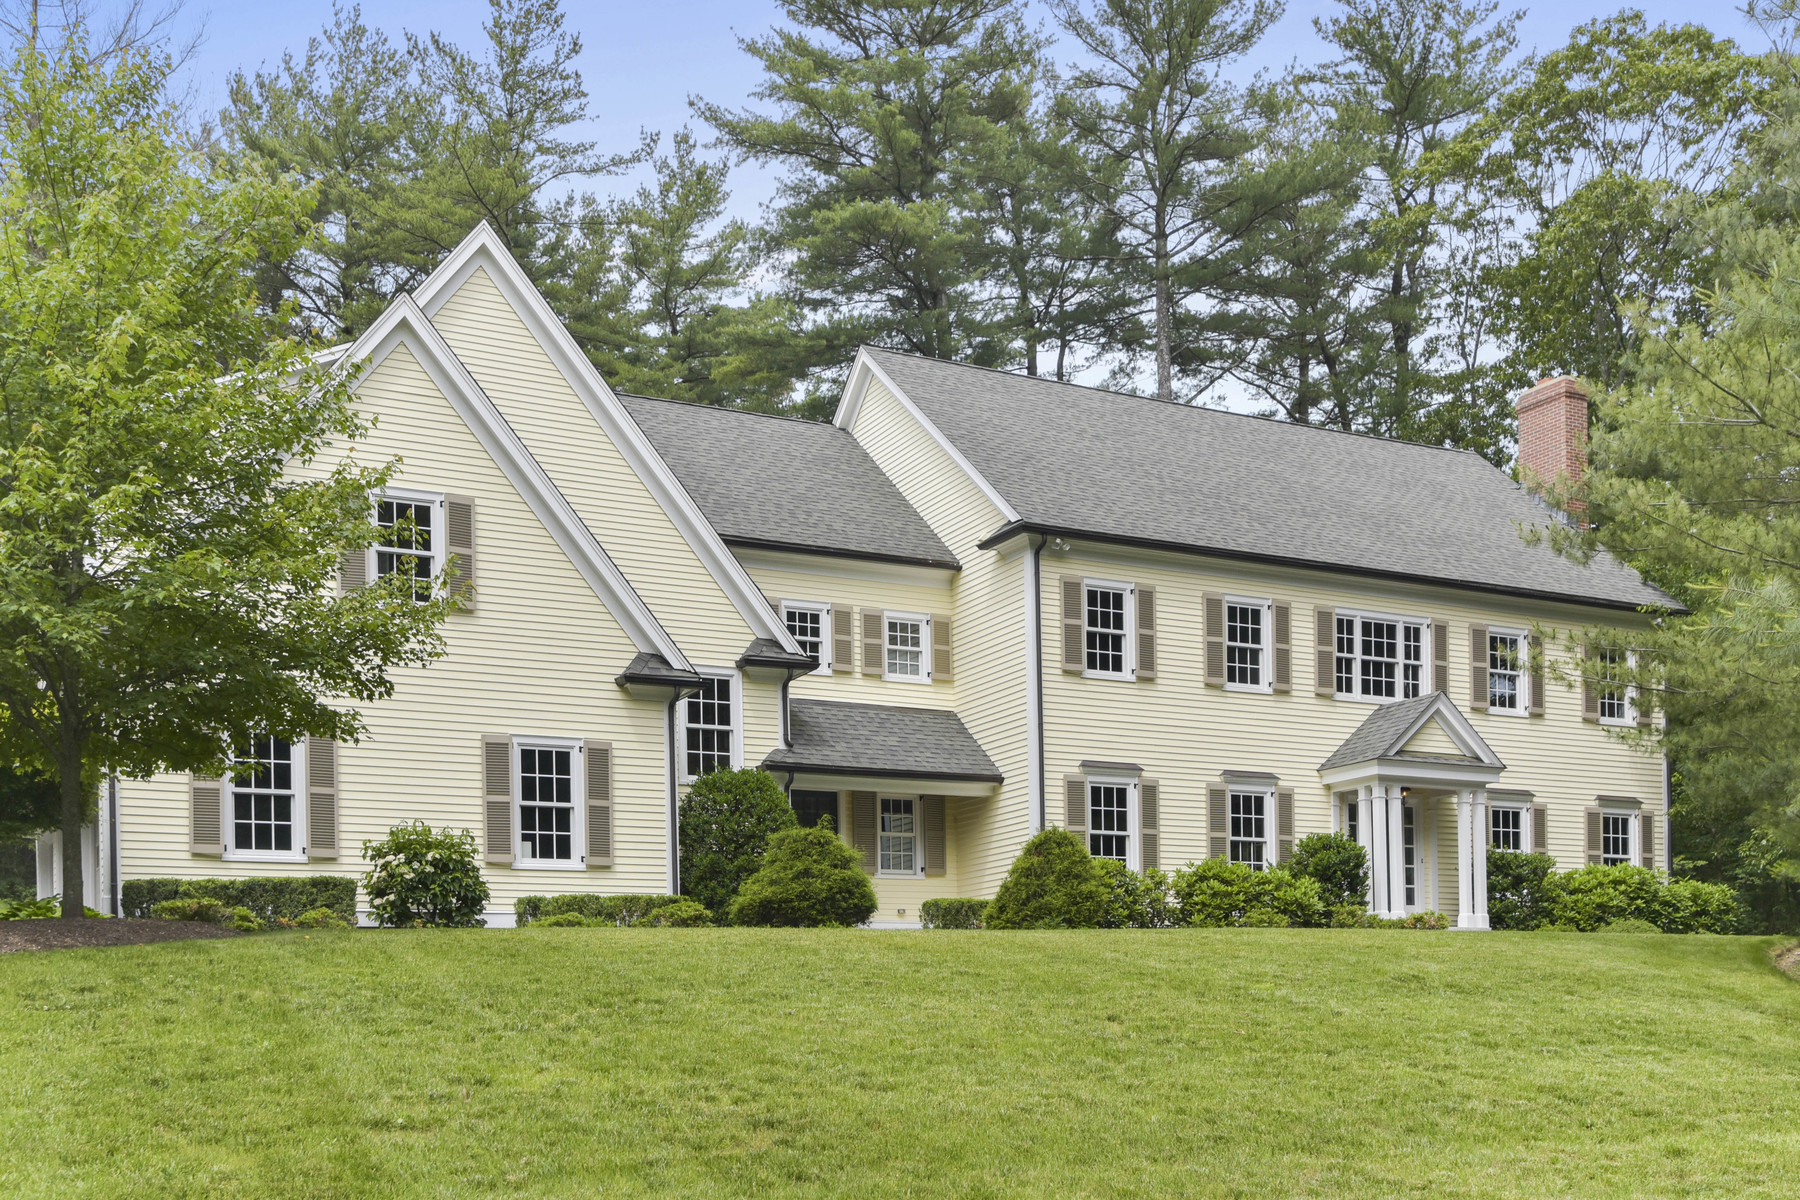 Single Family Home for Sale at This splendid home boasts over 5,200 sq. ft. 81 Montvale Road Weston, Massachusetts 02493 United States